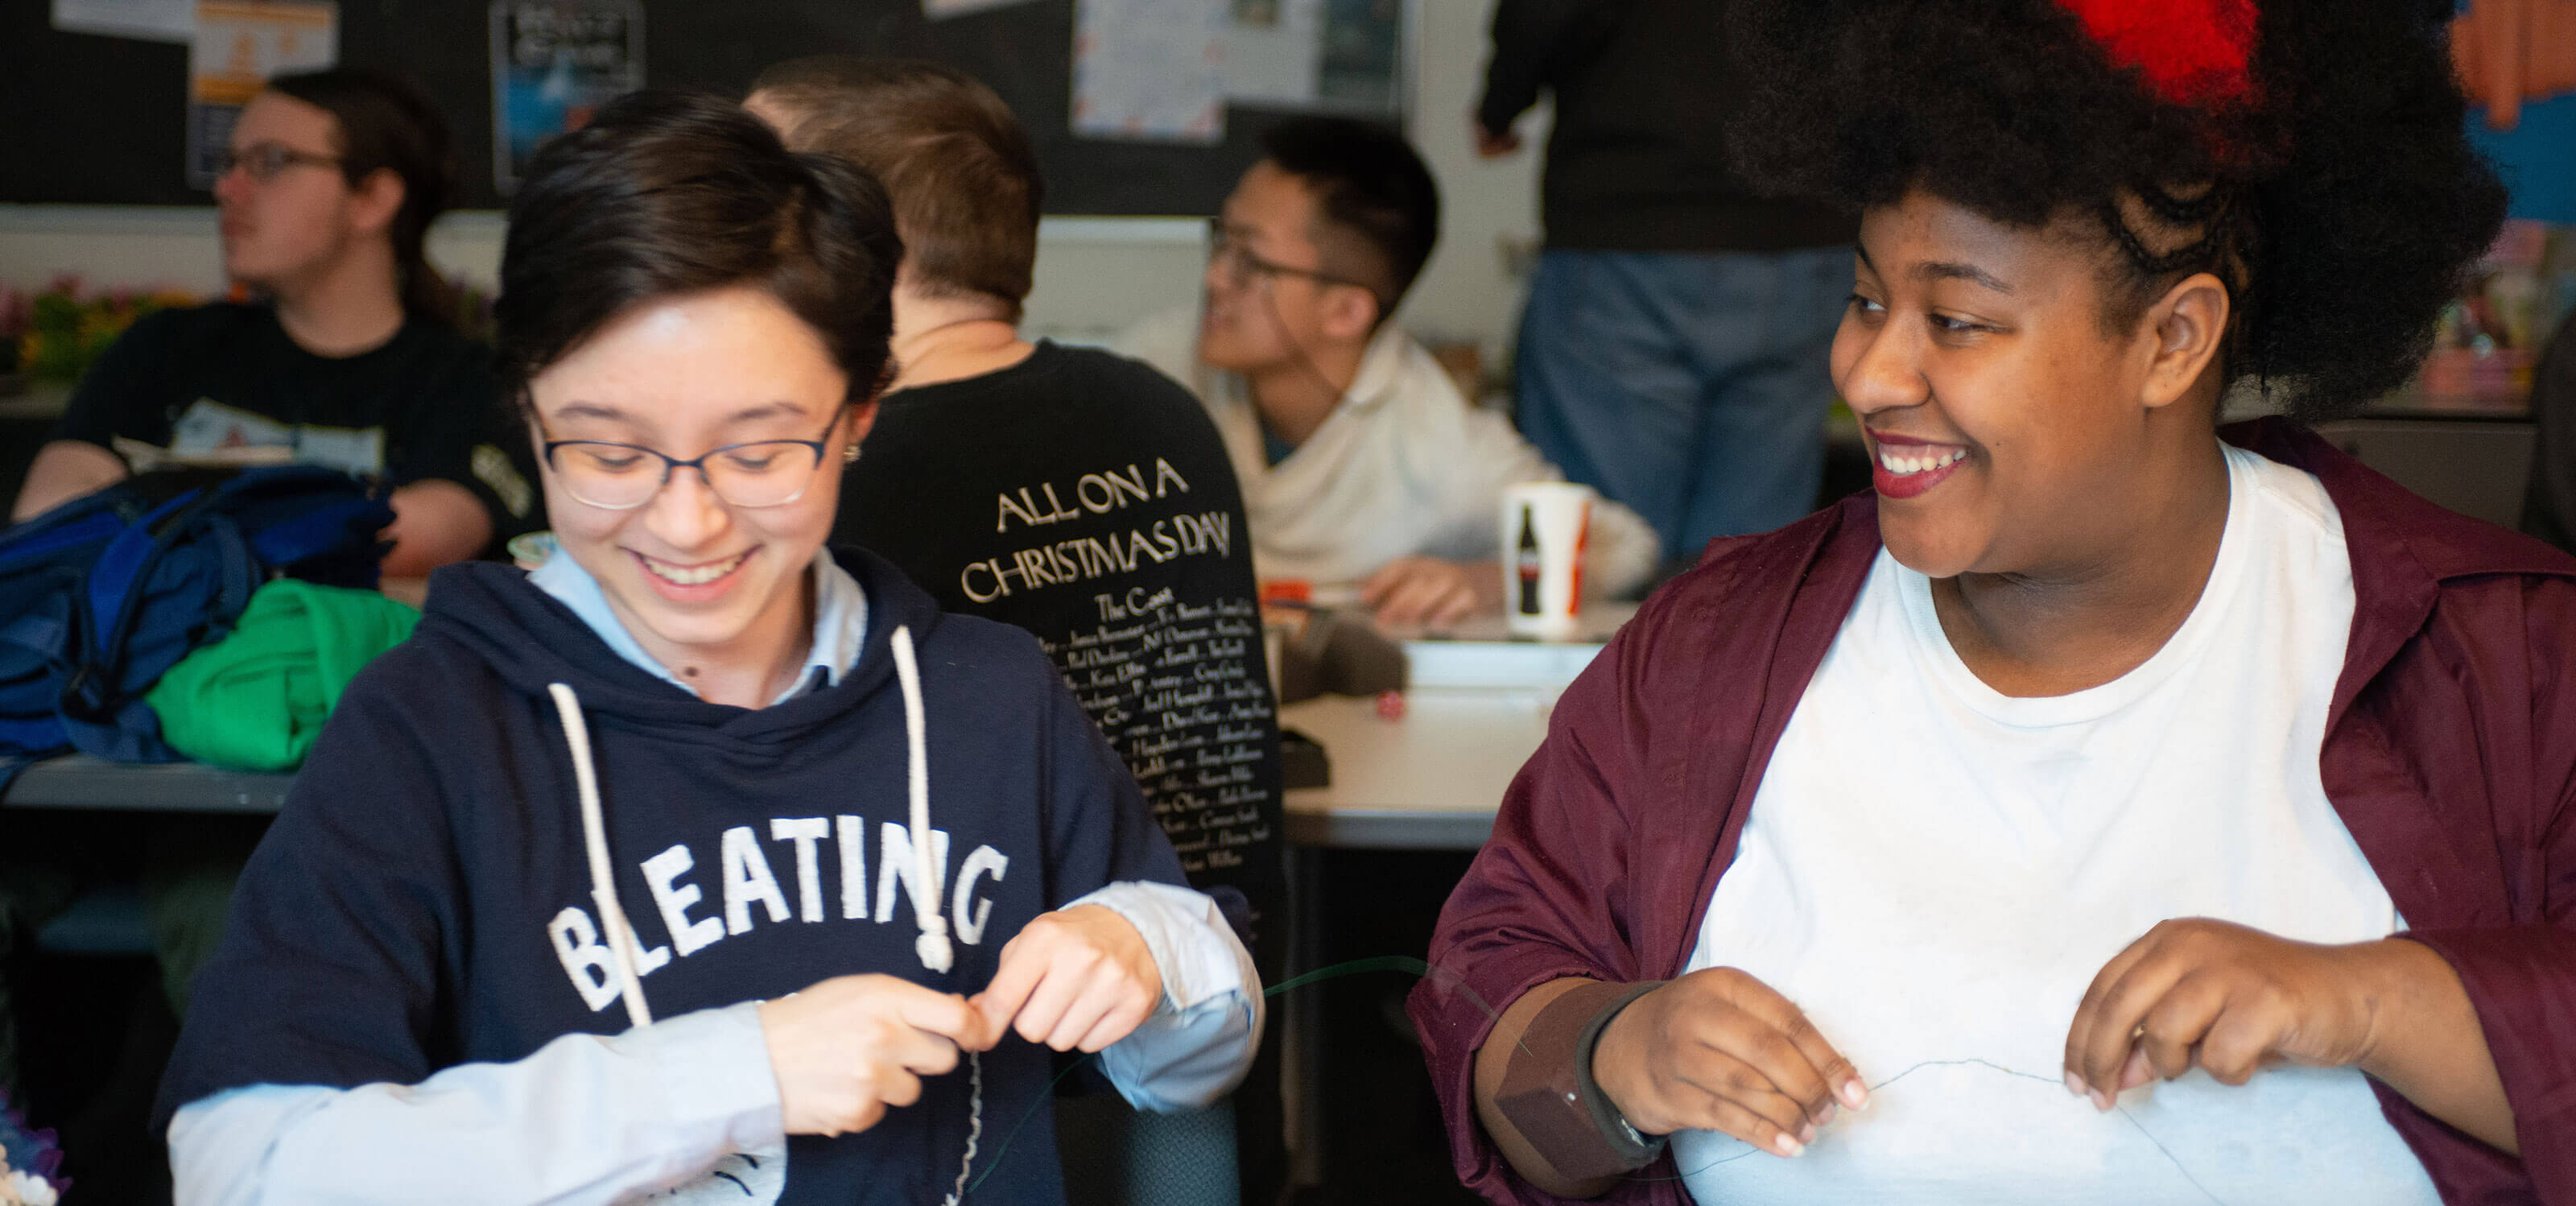 Two DigiPen students smile as they work on crafts together